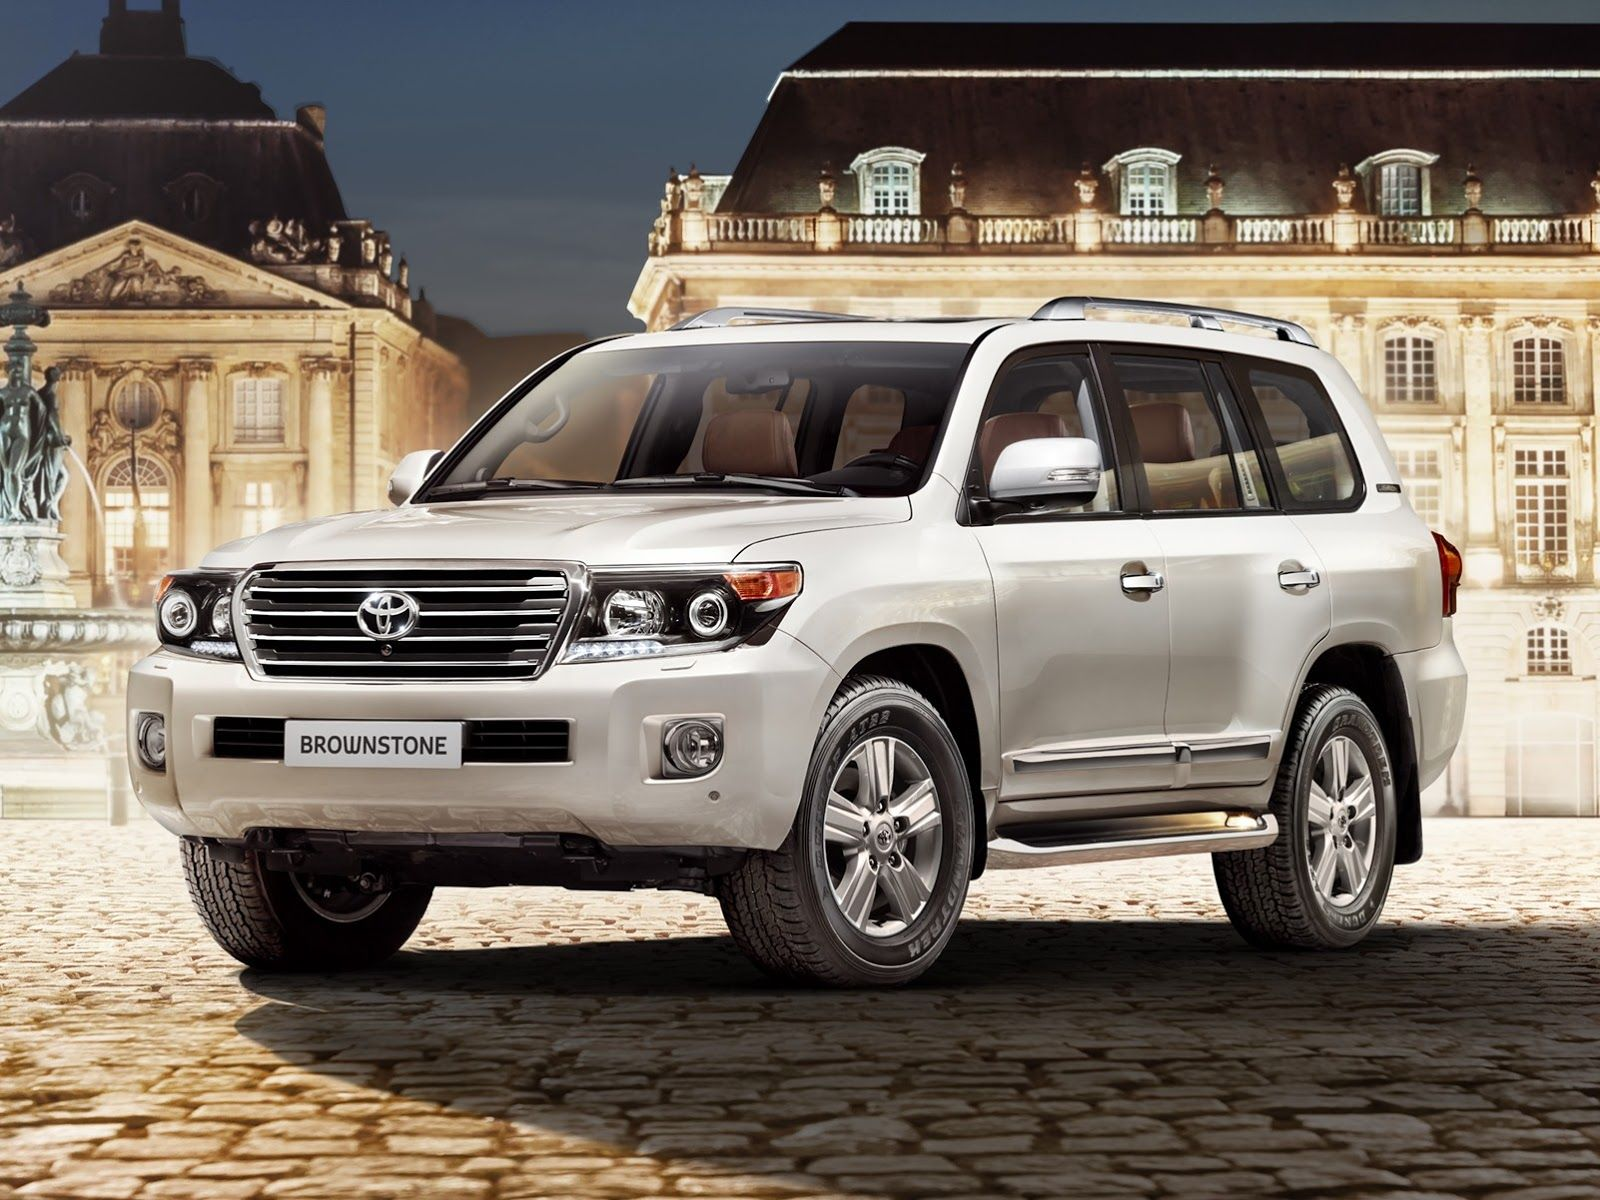 2016 toyota land cruiser redesign and changes http www autocarkr